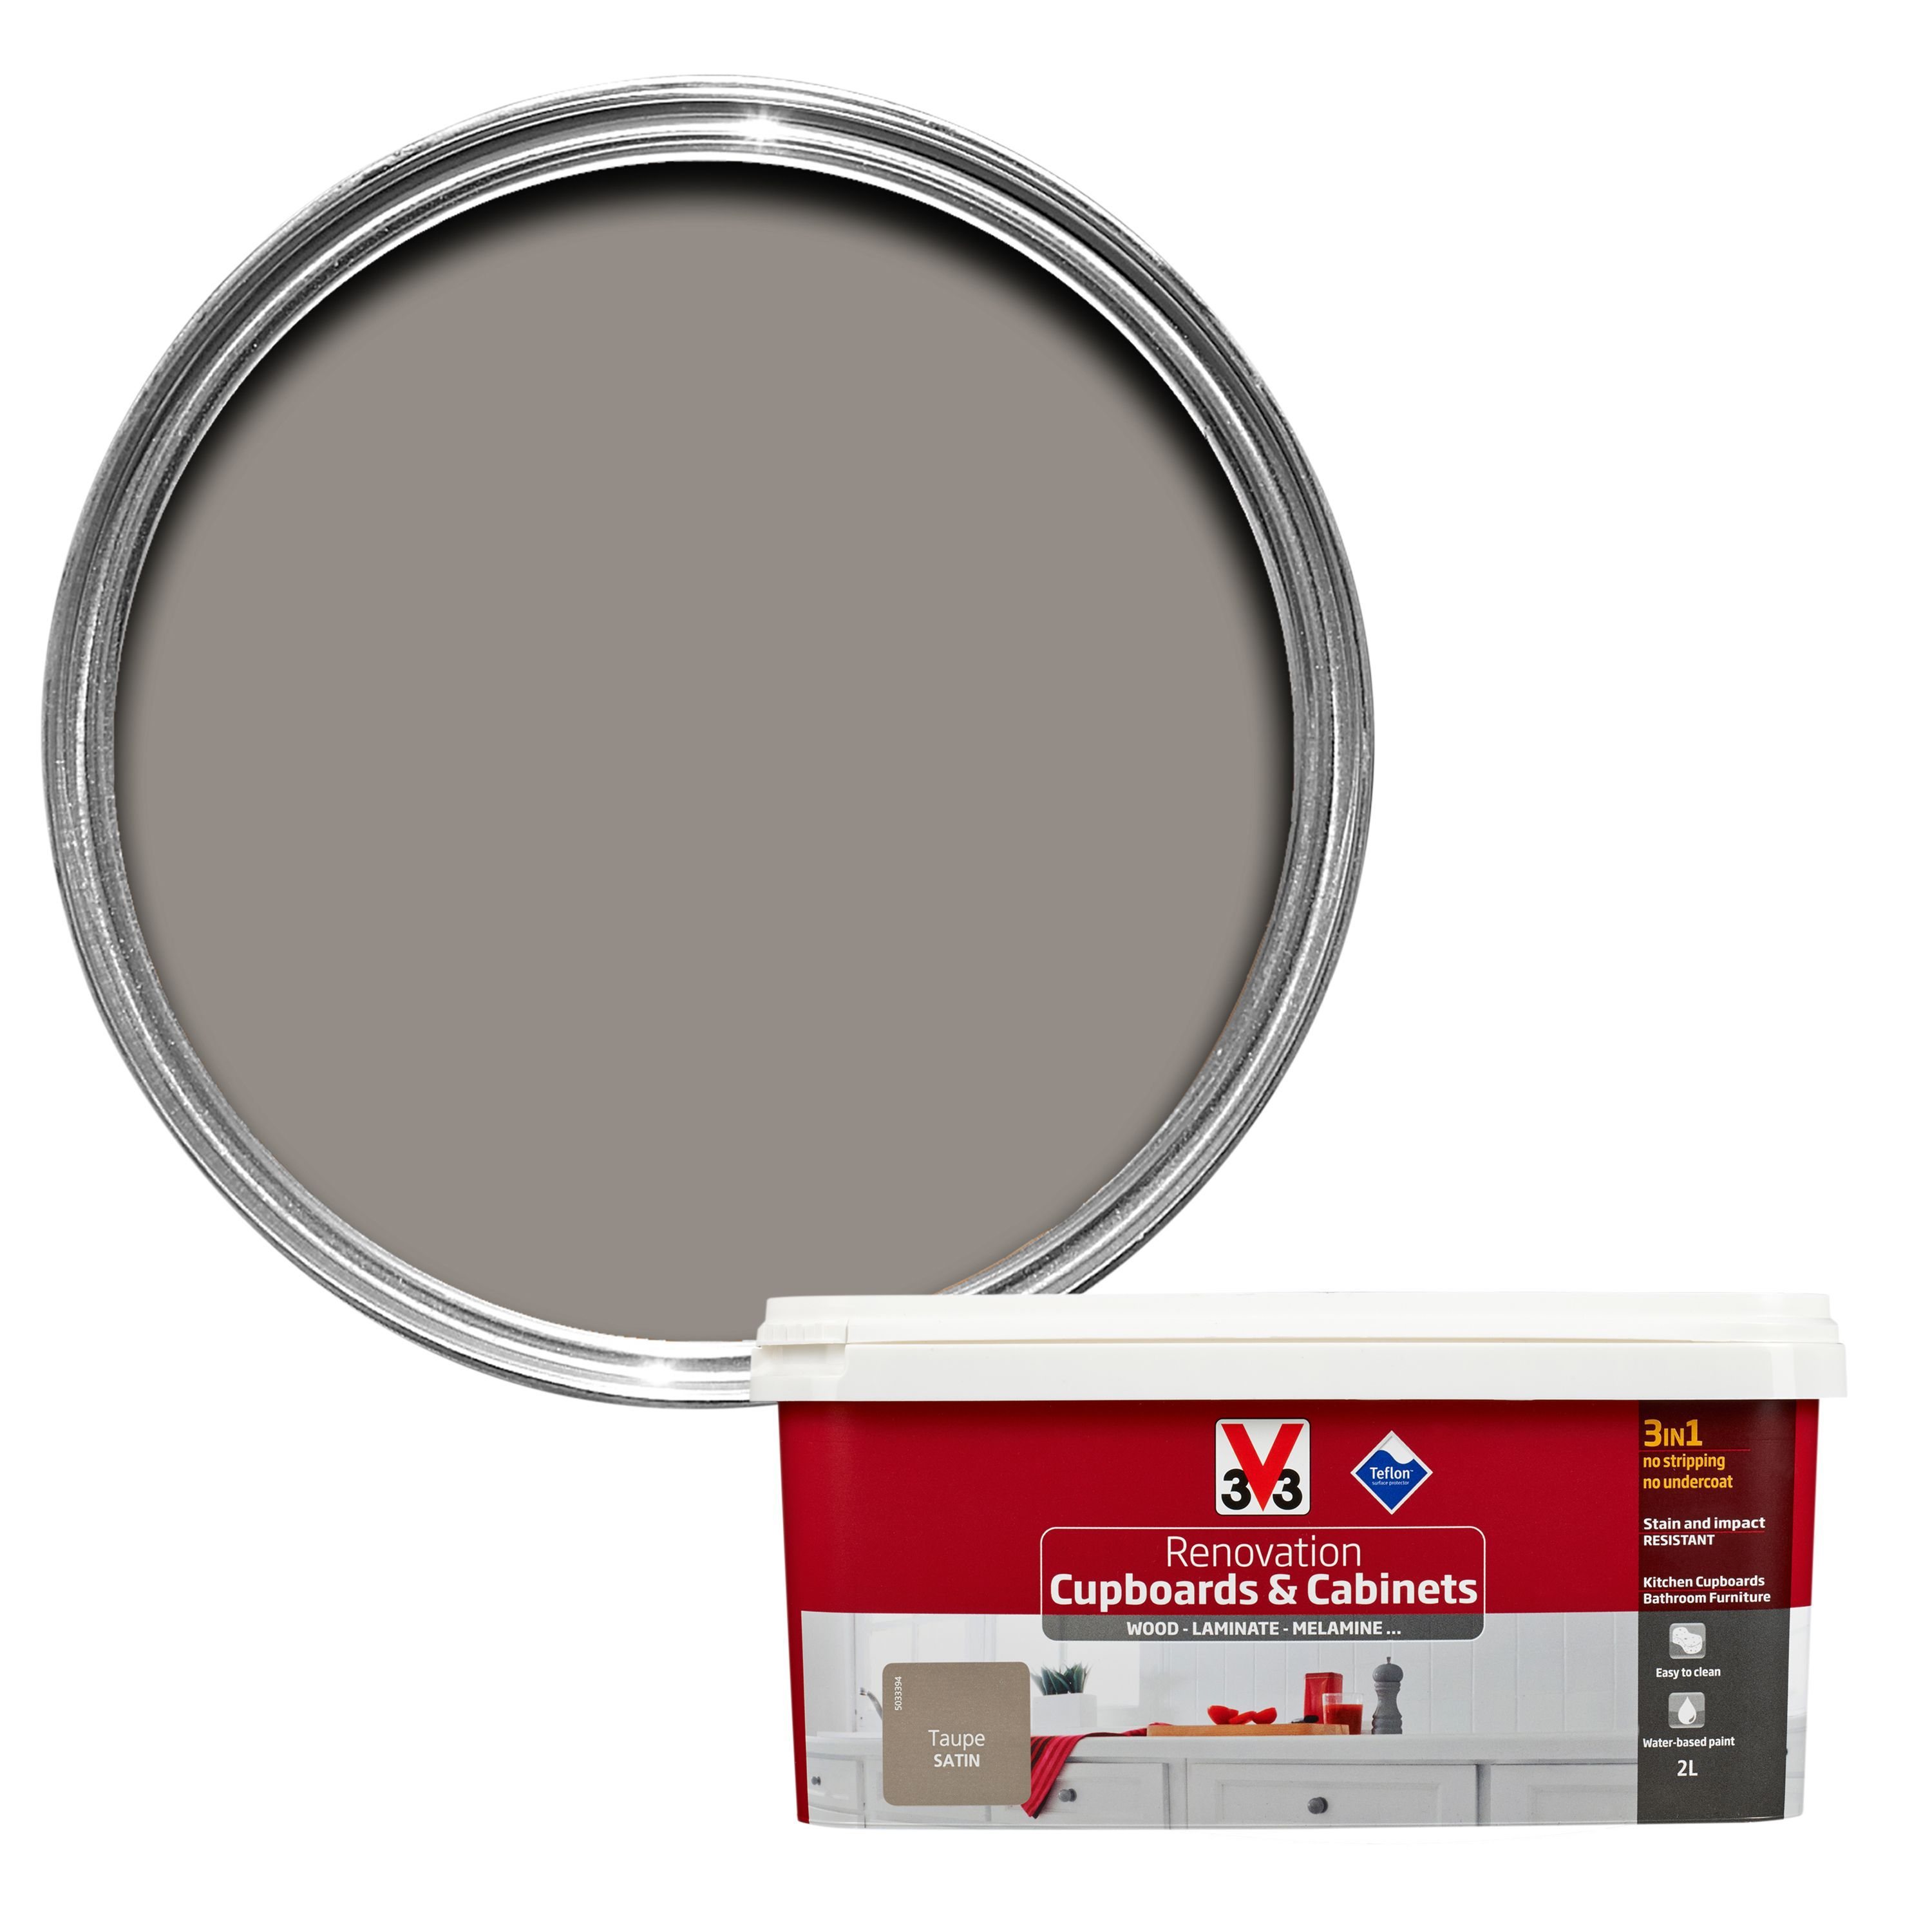 V33 Renovation Taupe Smooth Satin Kitchen Cupboard & Cabinet Paint 2000 Ml